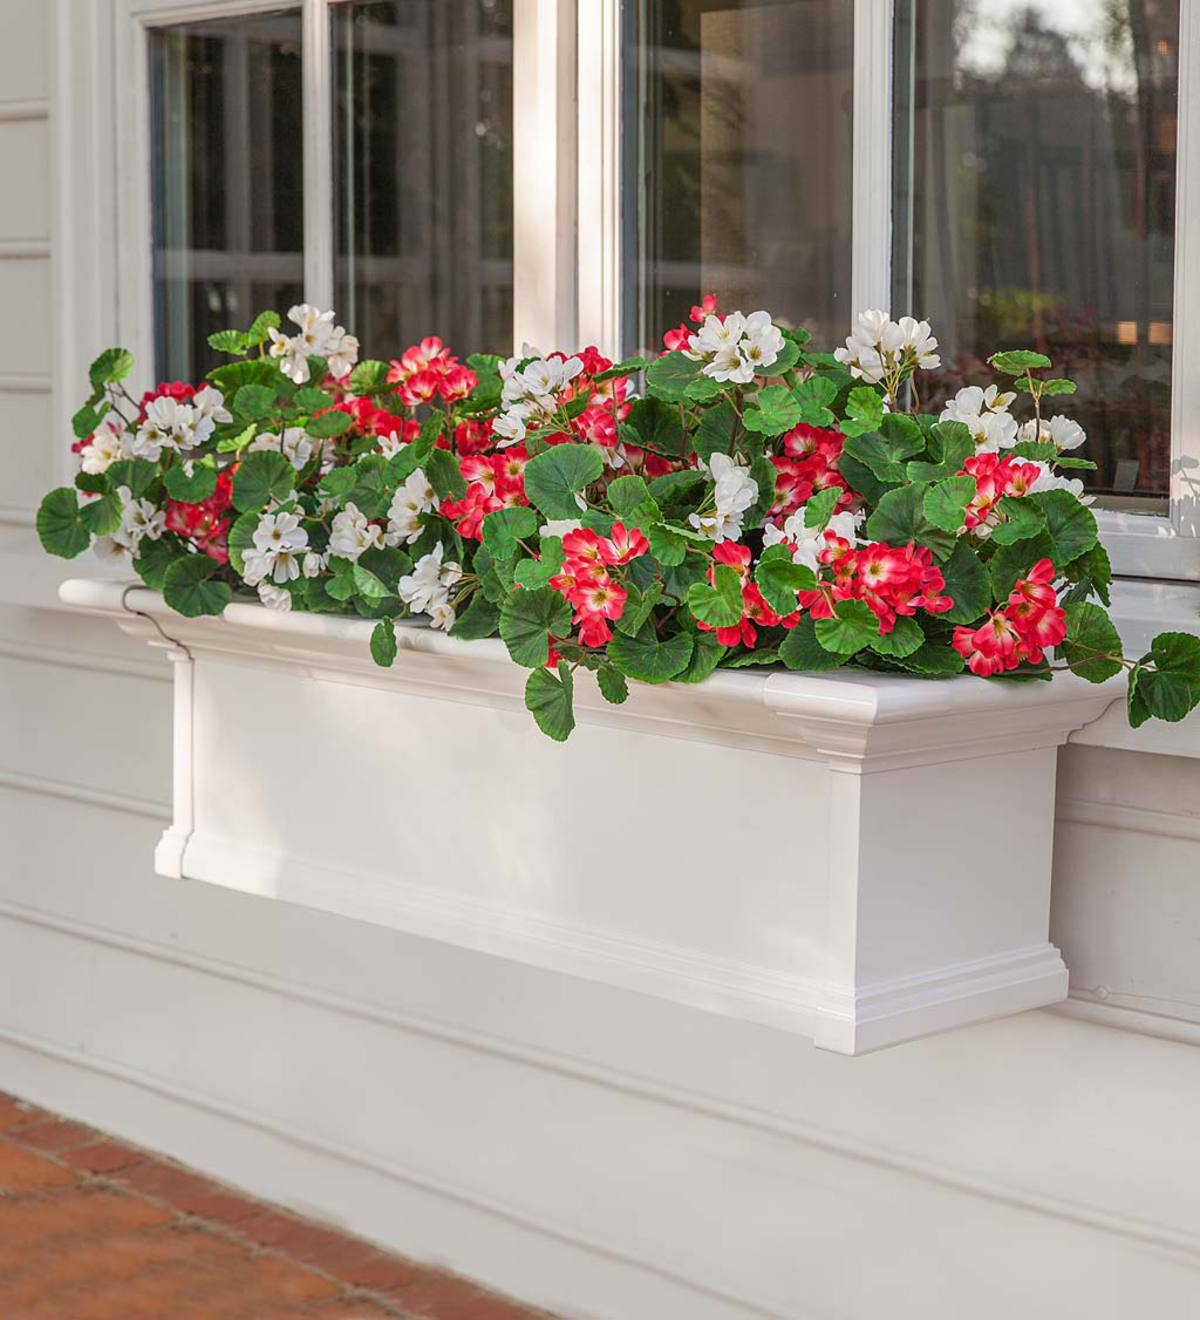 Everlasting Faux Red and White Geranium Window Box Filler